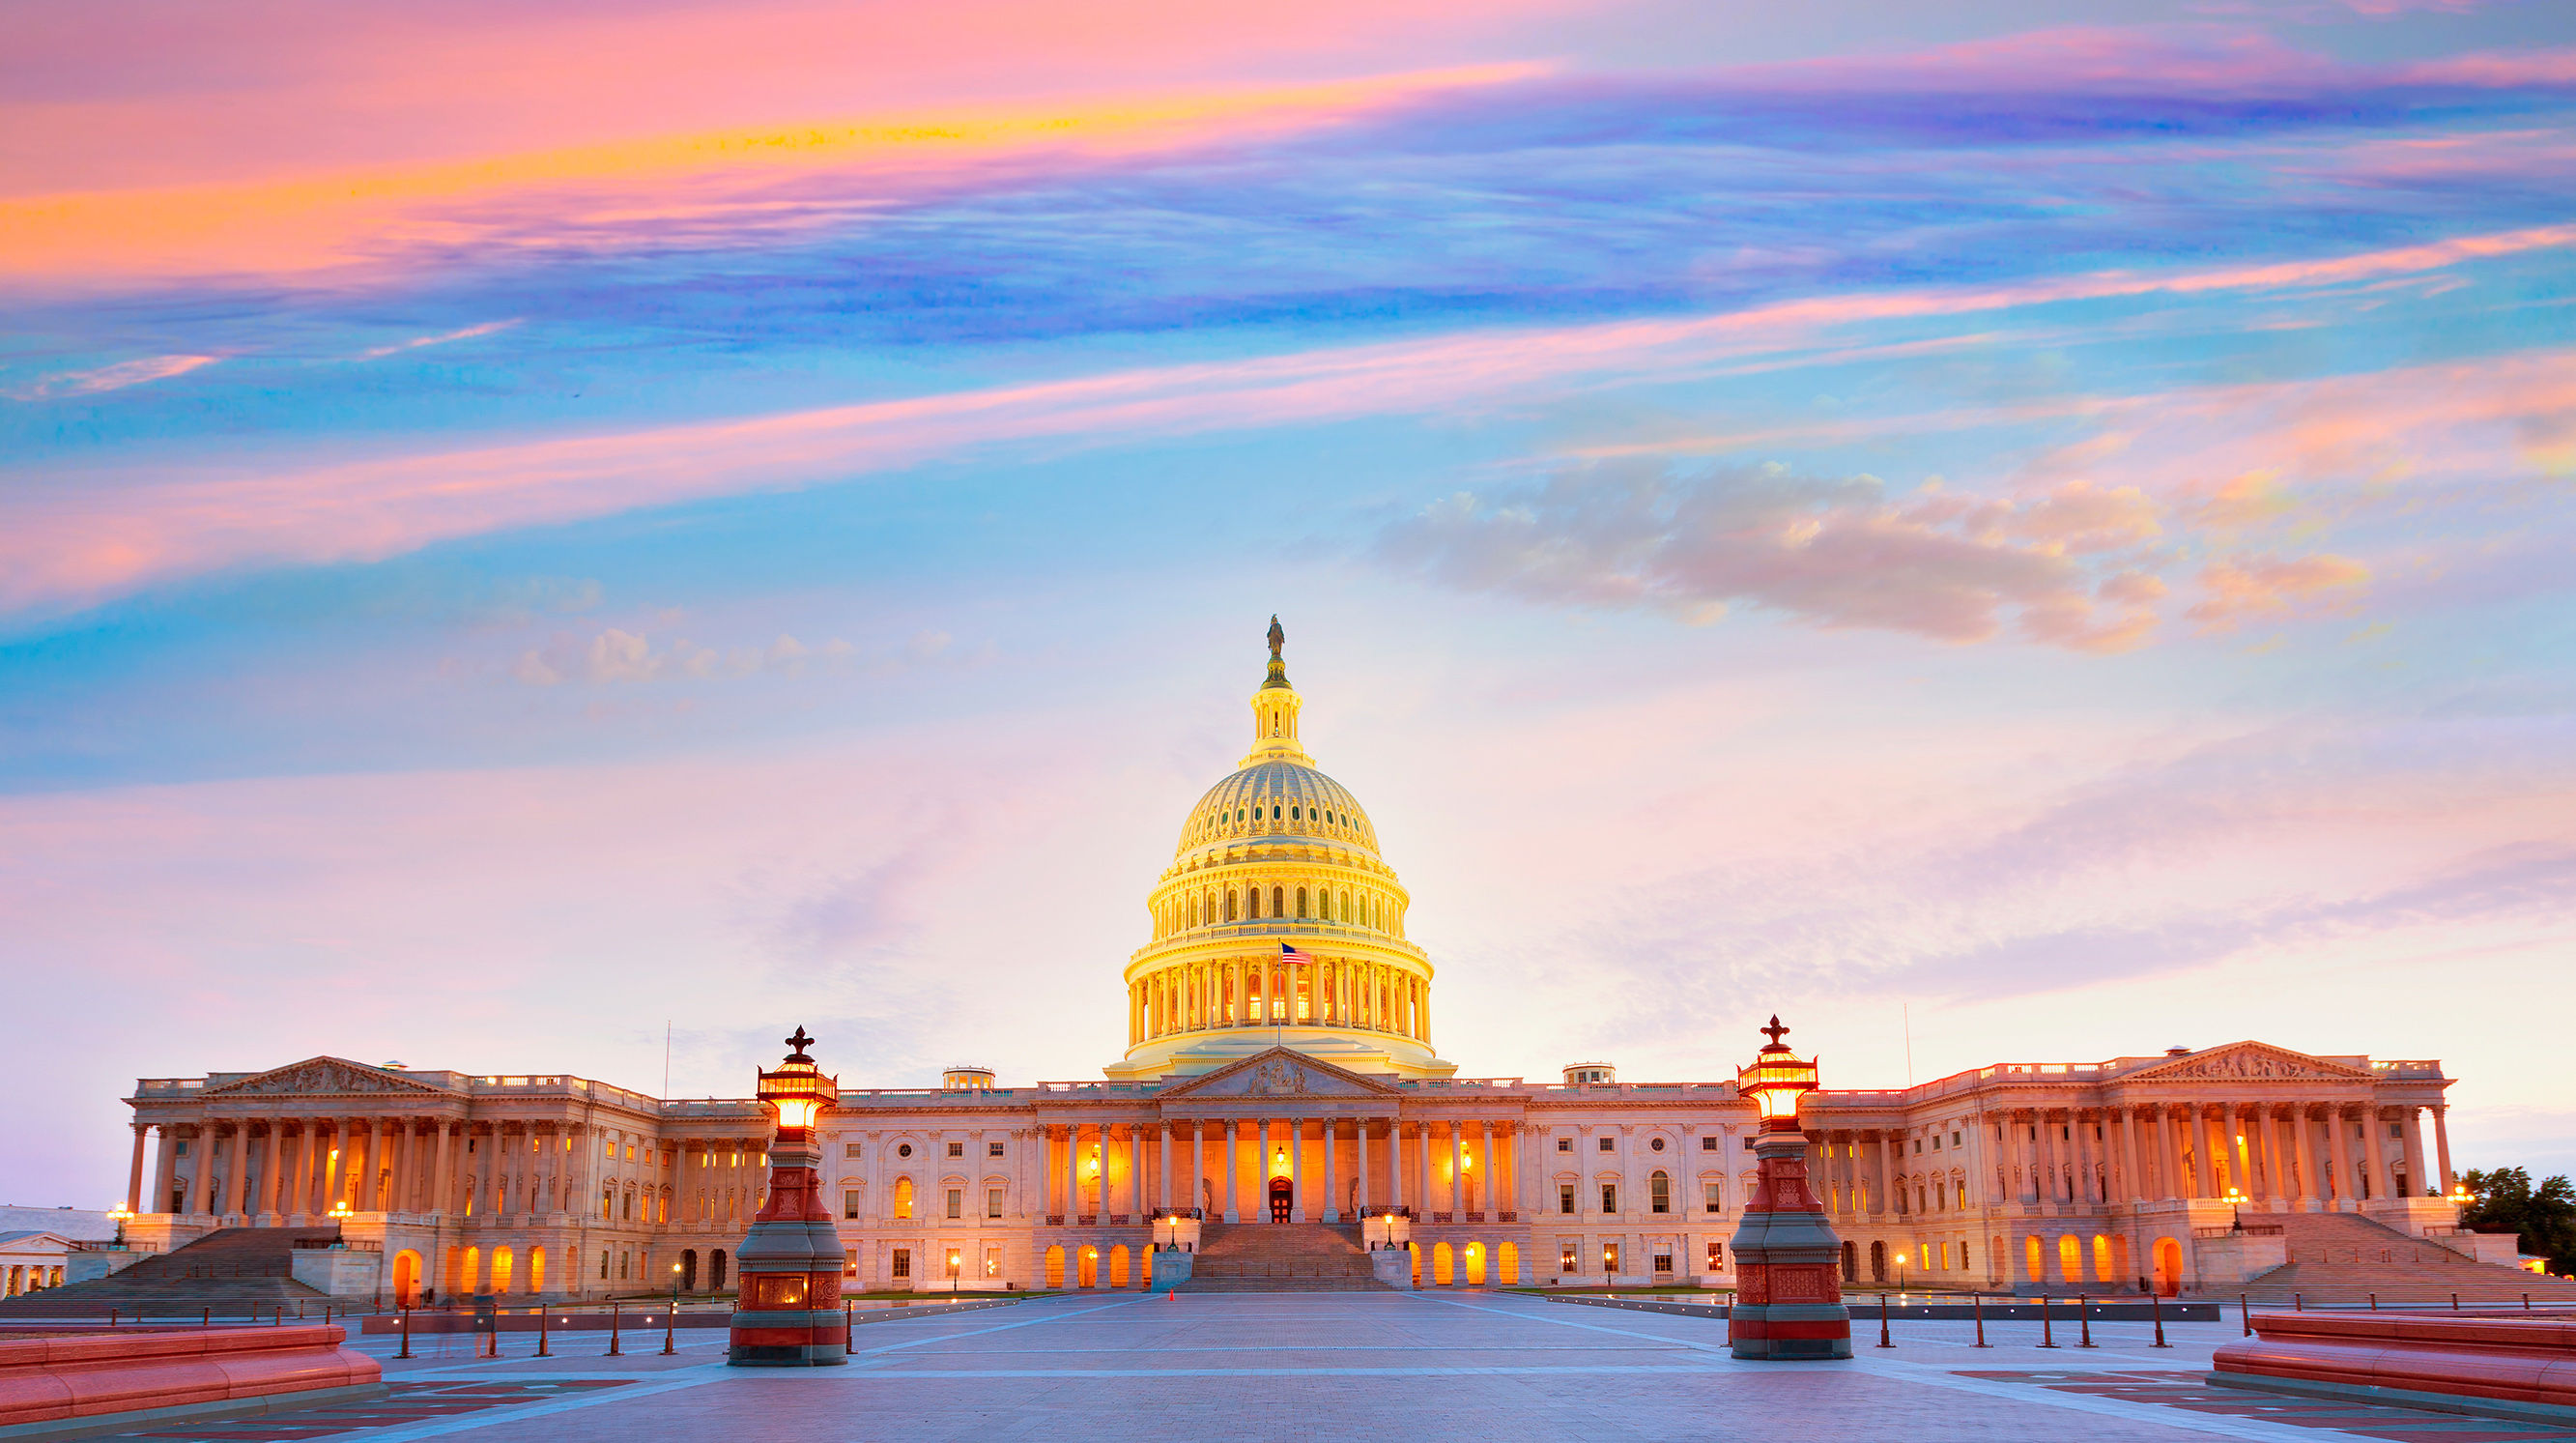 United States Capitol Building at Sunset